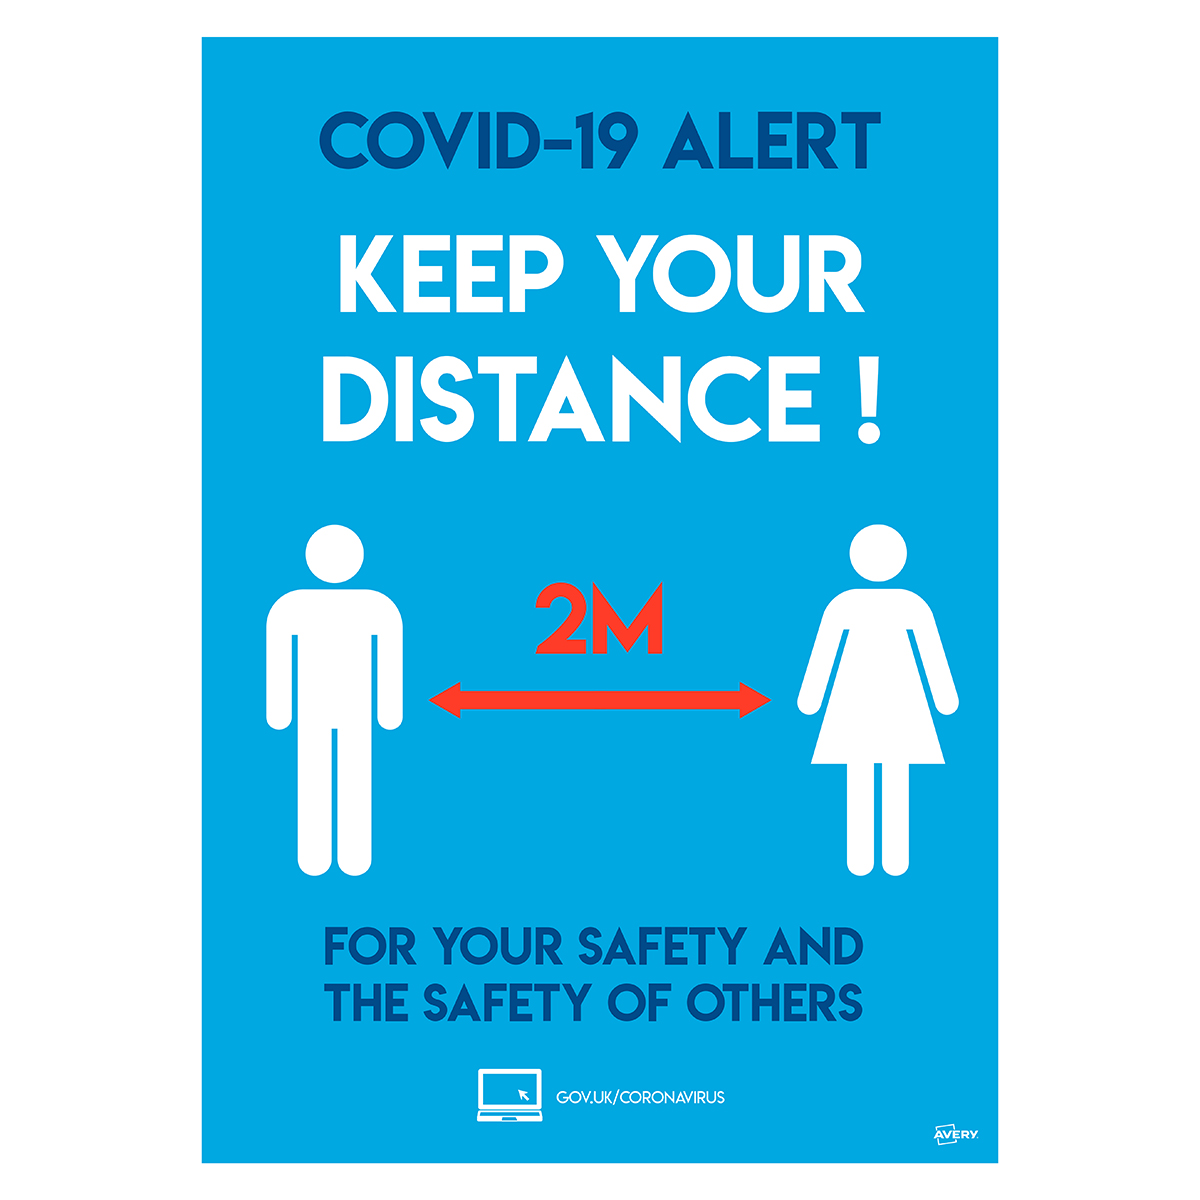 Avery A4 COVID-19 Pre-Printed Social Distancing Poster